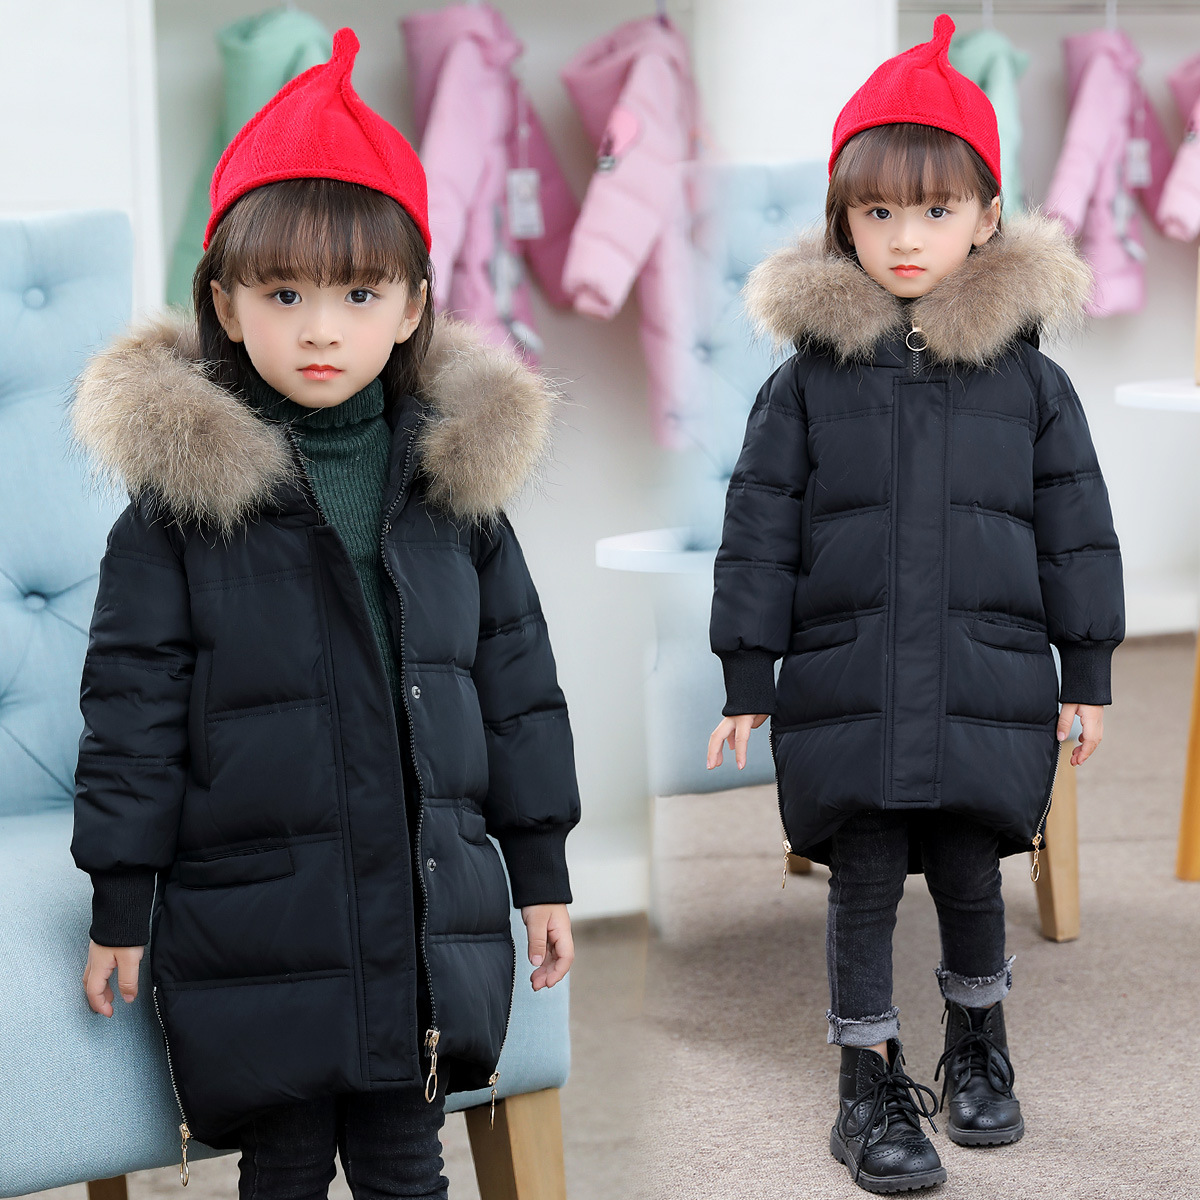 2017 Fashion Girl Winter Down Jackets Children Coats Warm Baby Thick Duck Down Kids Outerwears for Cold -30 Degree Jacket fashion 2017 girl s down jackets winter russia baby coats thick duck warm jacket for girls boys children outerwears 30 degree